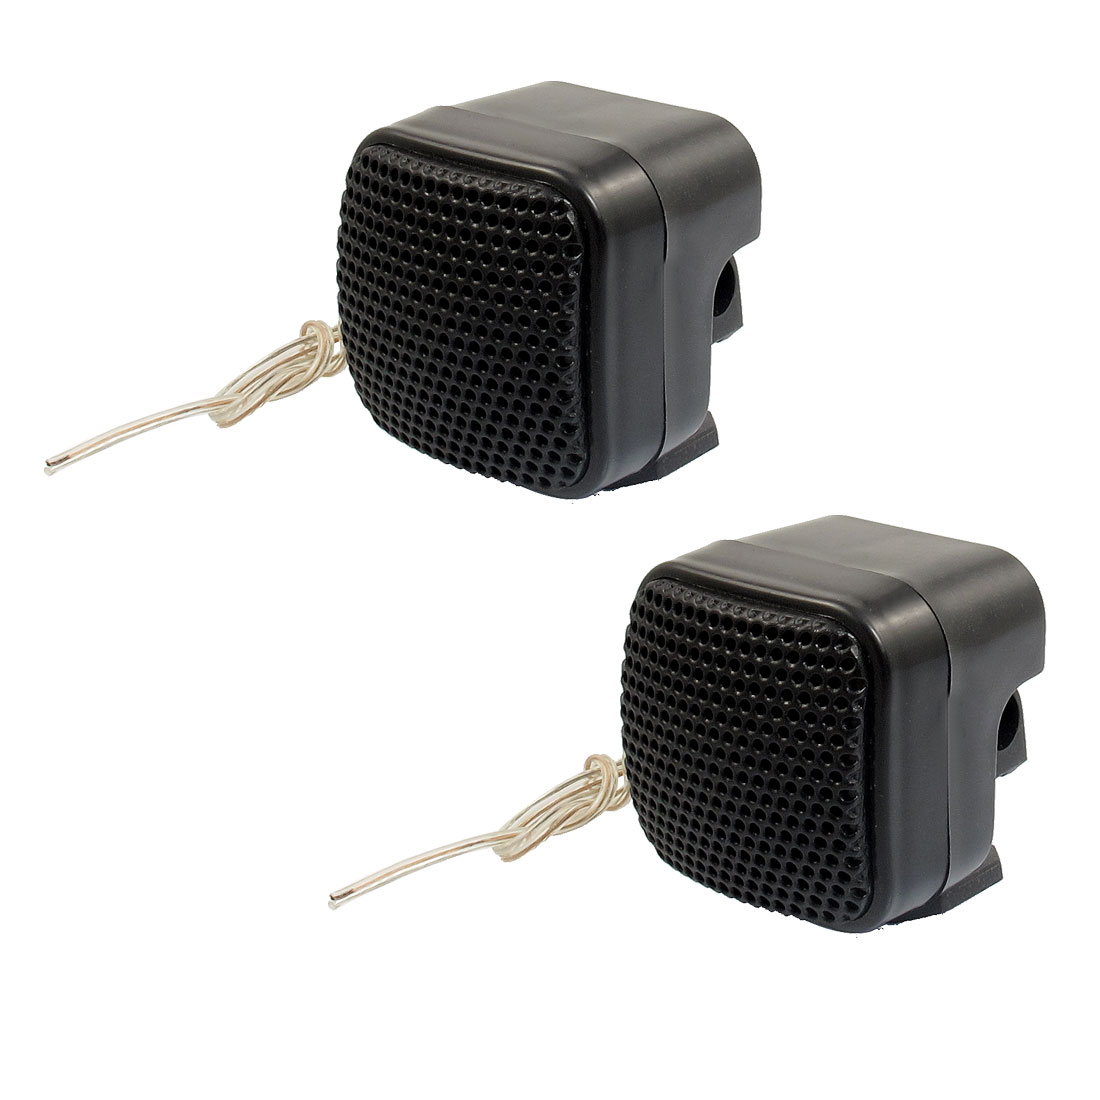 2 Pcs Car Auto Vehicle Audio System Tweeter Speakers Black